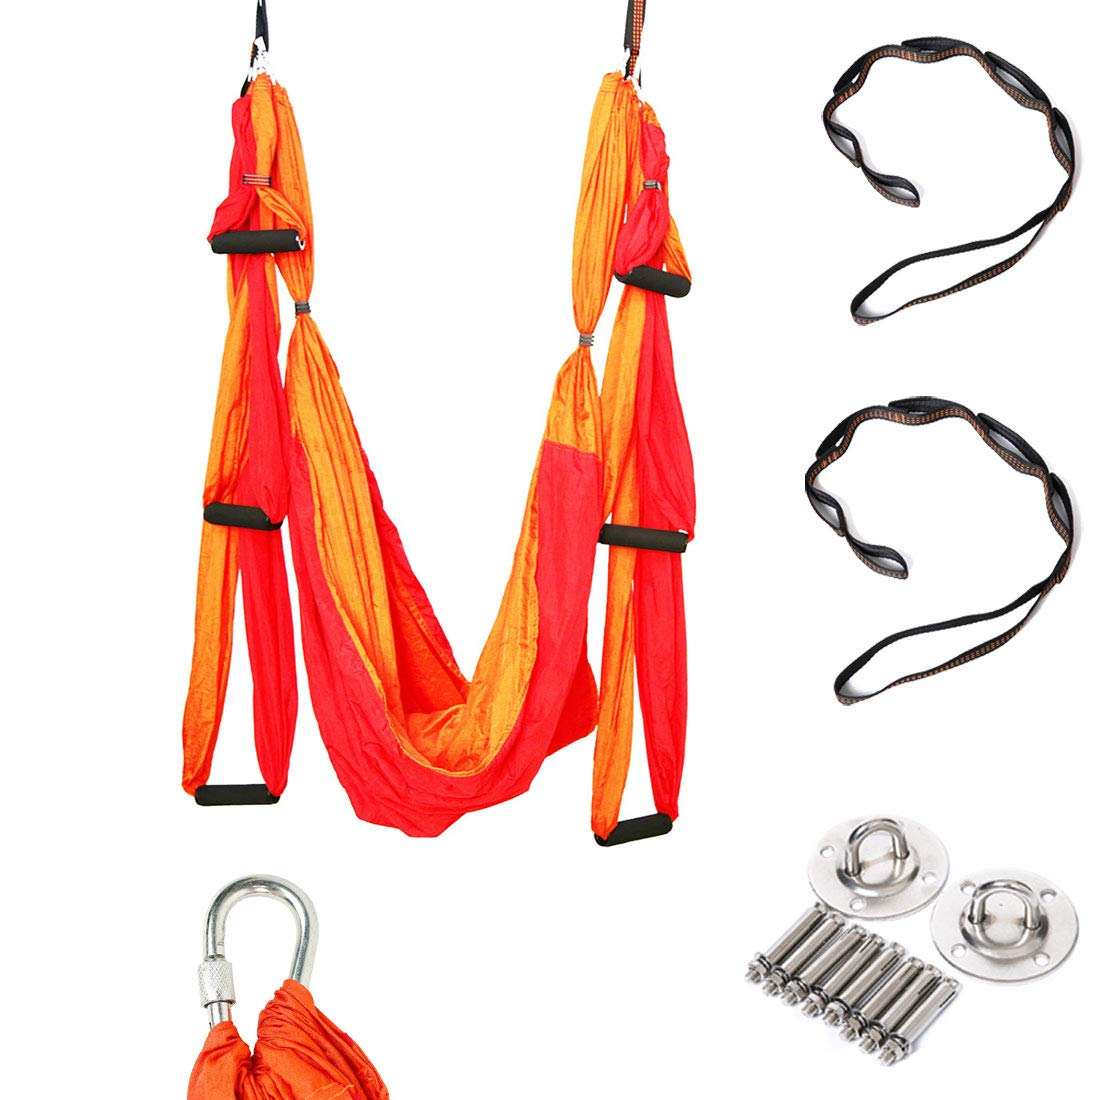 Geelife Aerial Yoga Trapeze Kit Body Hammock Yoga Swing Rigging for Antigravity Yoga Sling Inversion Hanging Equipment